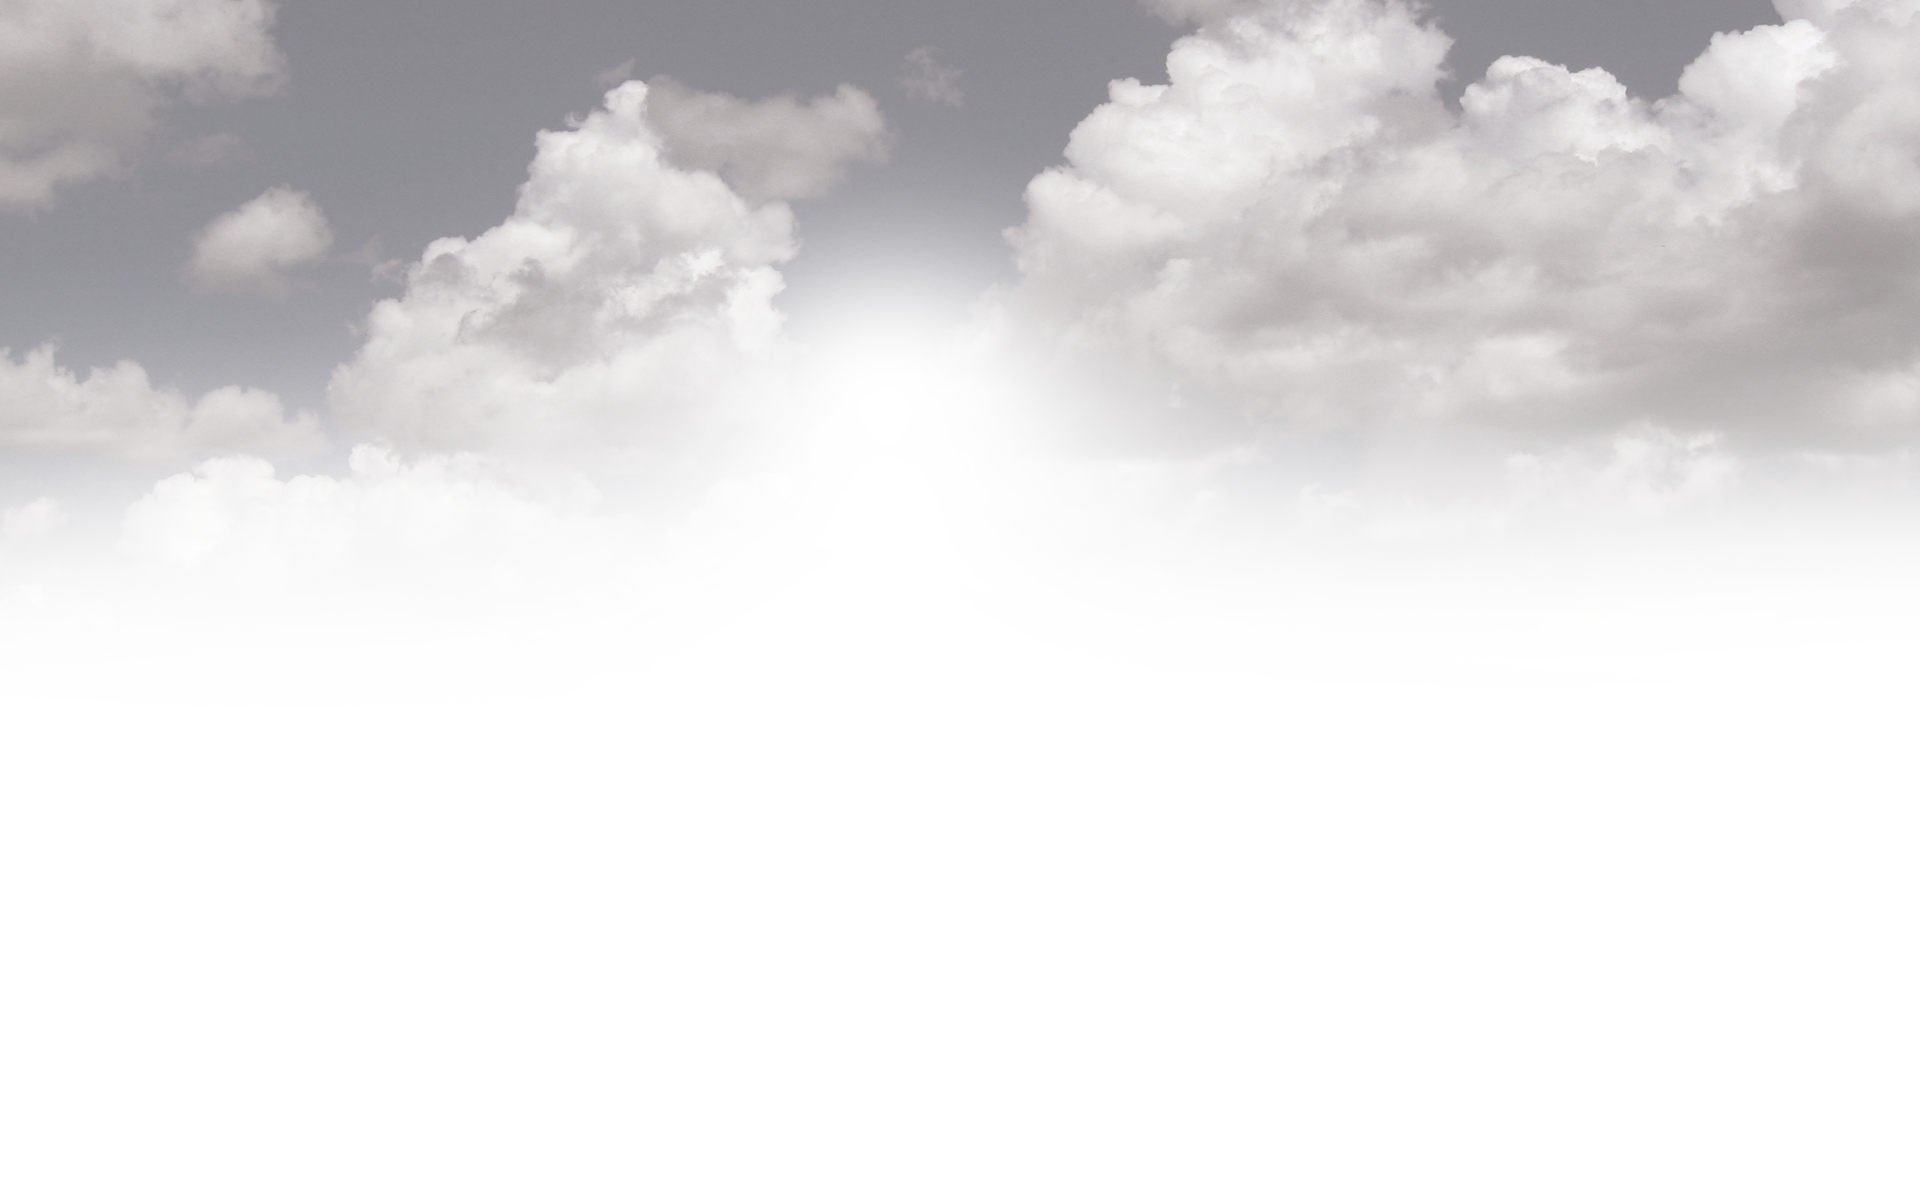 Clouds transparent png. White images pluspng image